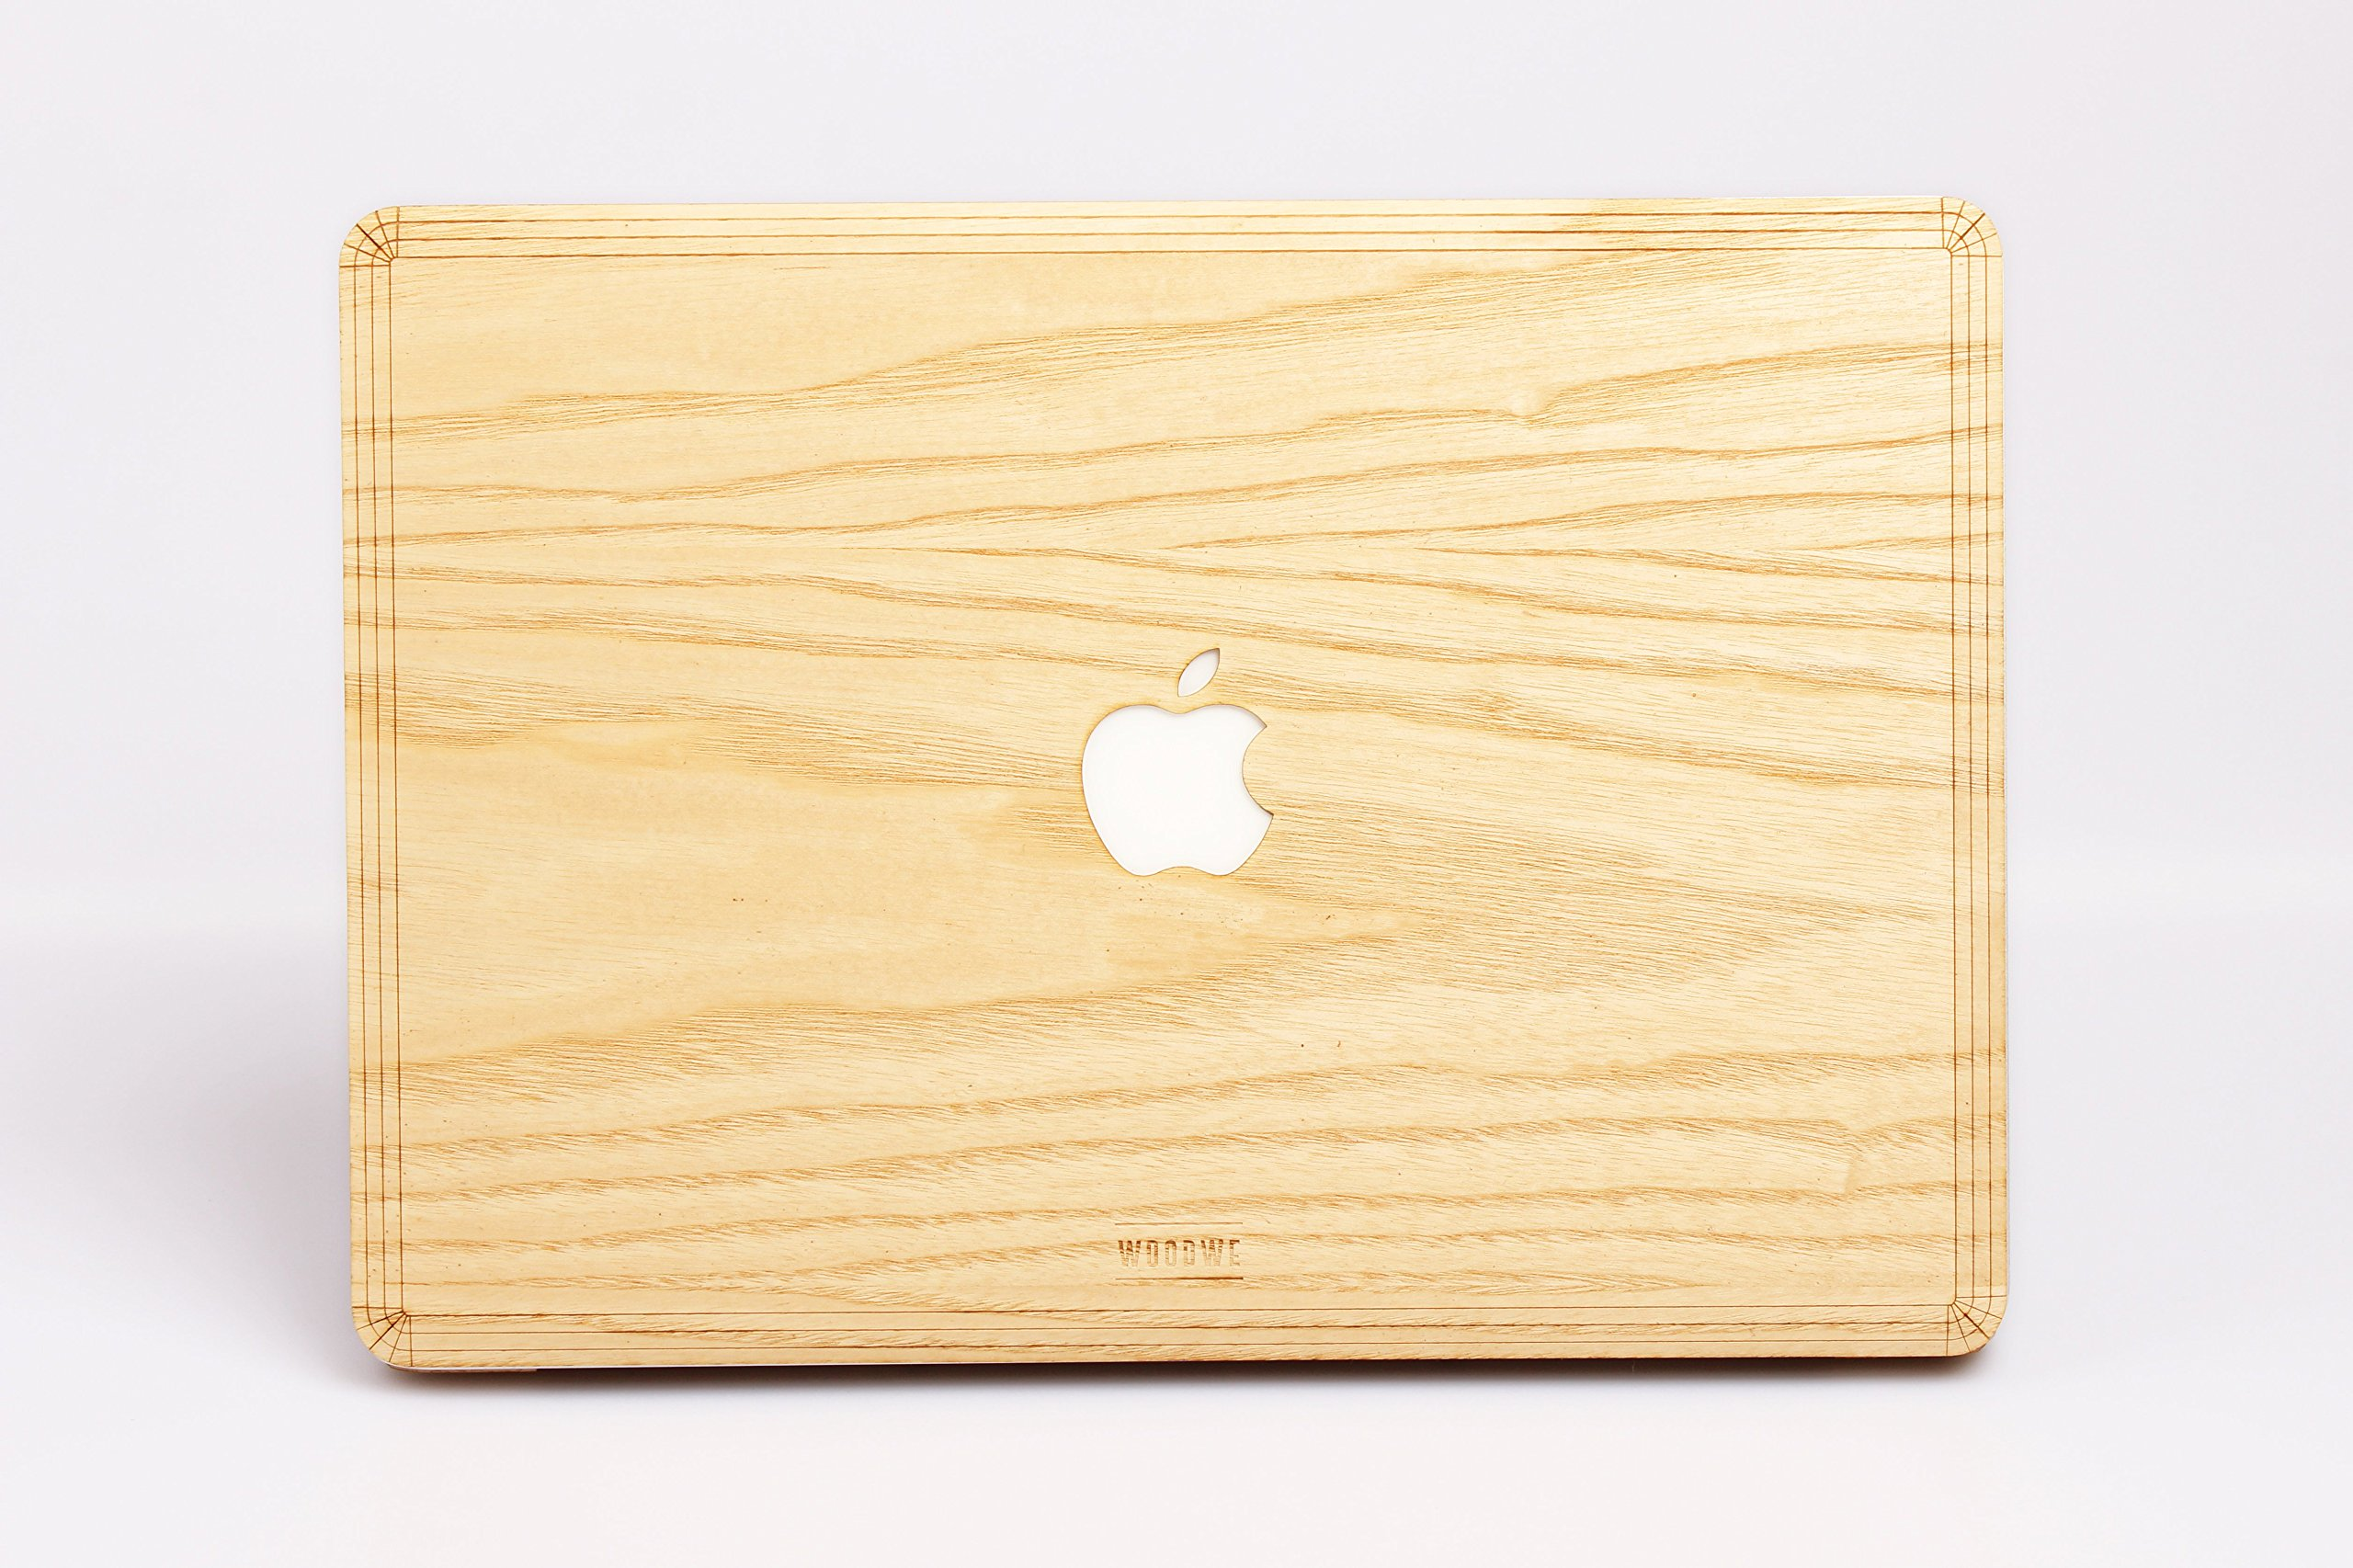 WOODWE Real Wood MacBook Skin Sticker Decal for Mac 12 inch | Model: A1434; Early 2015 – Mid 2017 | Genuine & Natural ASH Wood | TOP&Bottom Cover